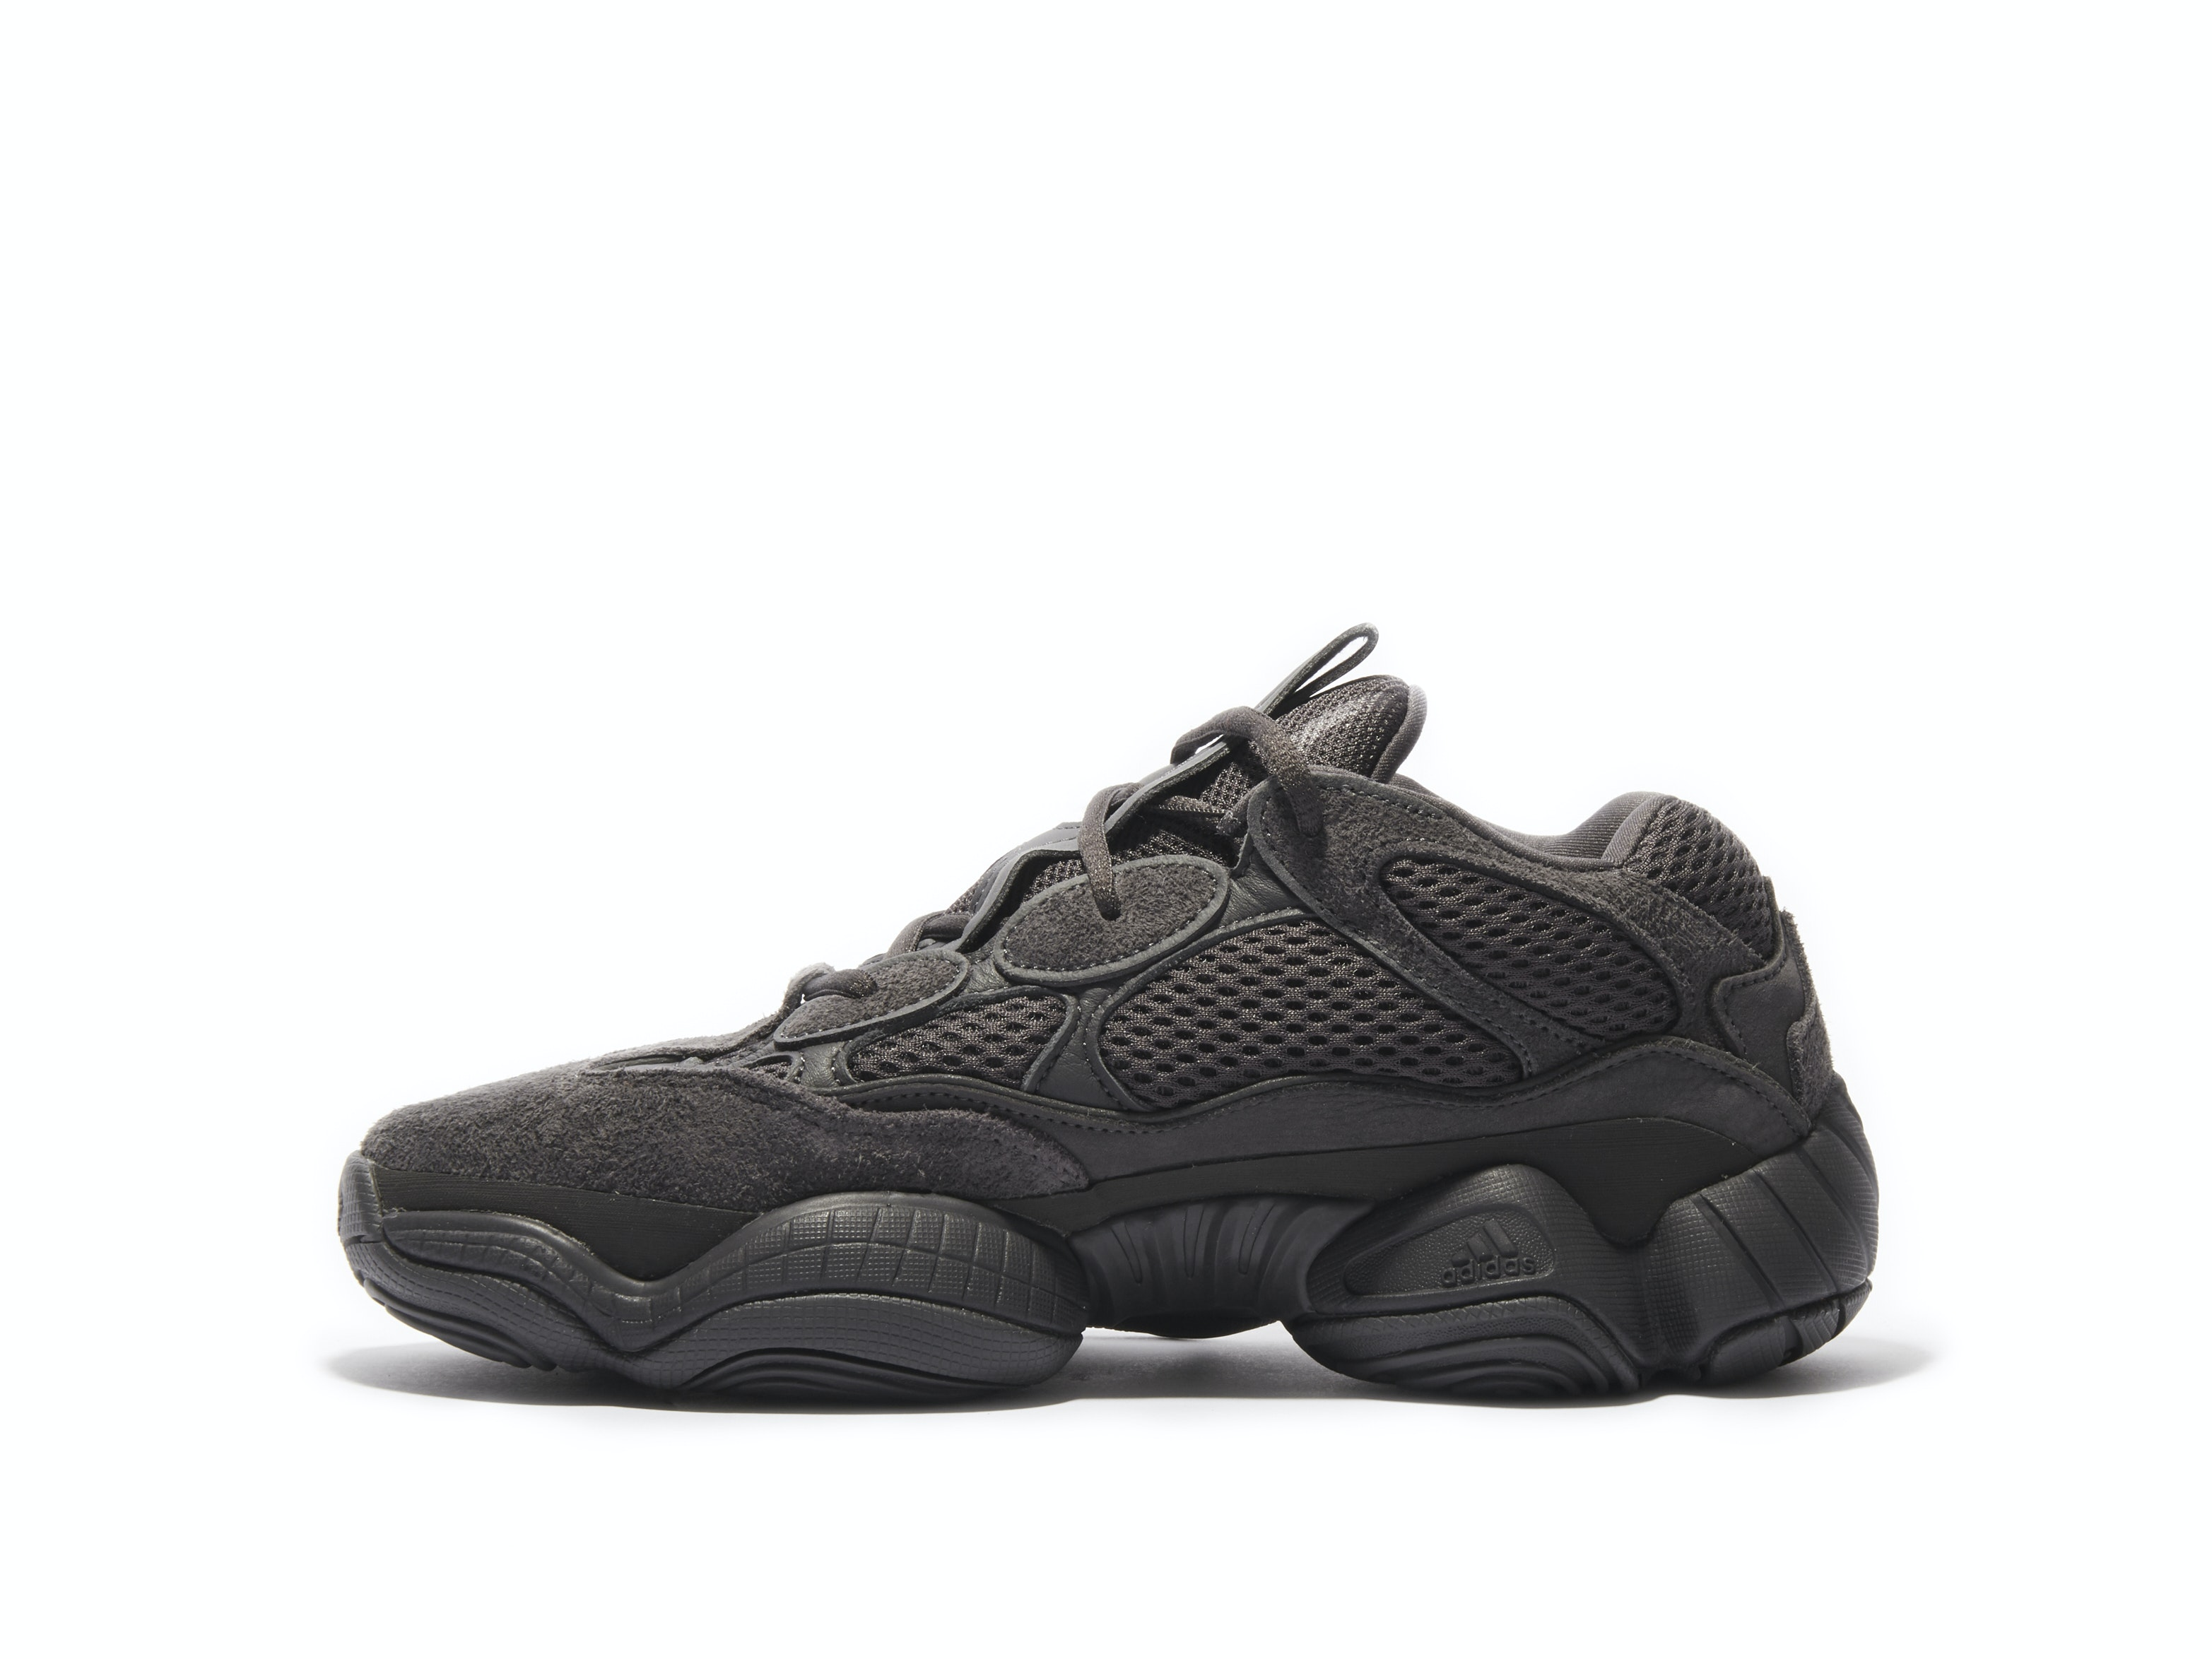 54c6c7d36 Yeezy Boost 500 Utility Black. 100% AuthenticAvg Delivery Time  1-2 days.  Adidas   F36640